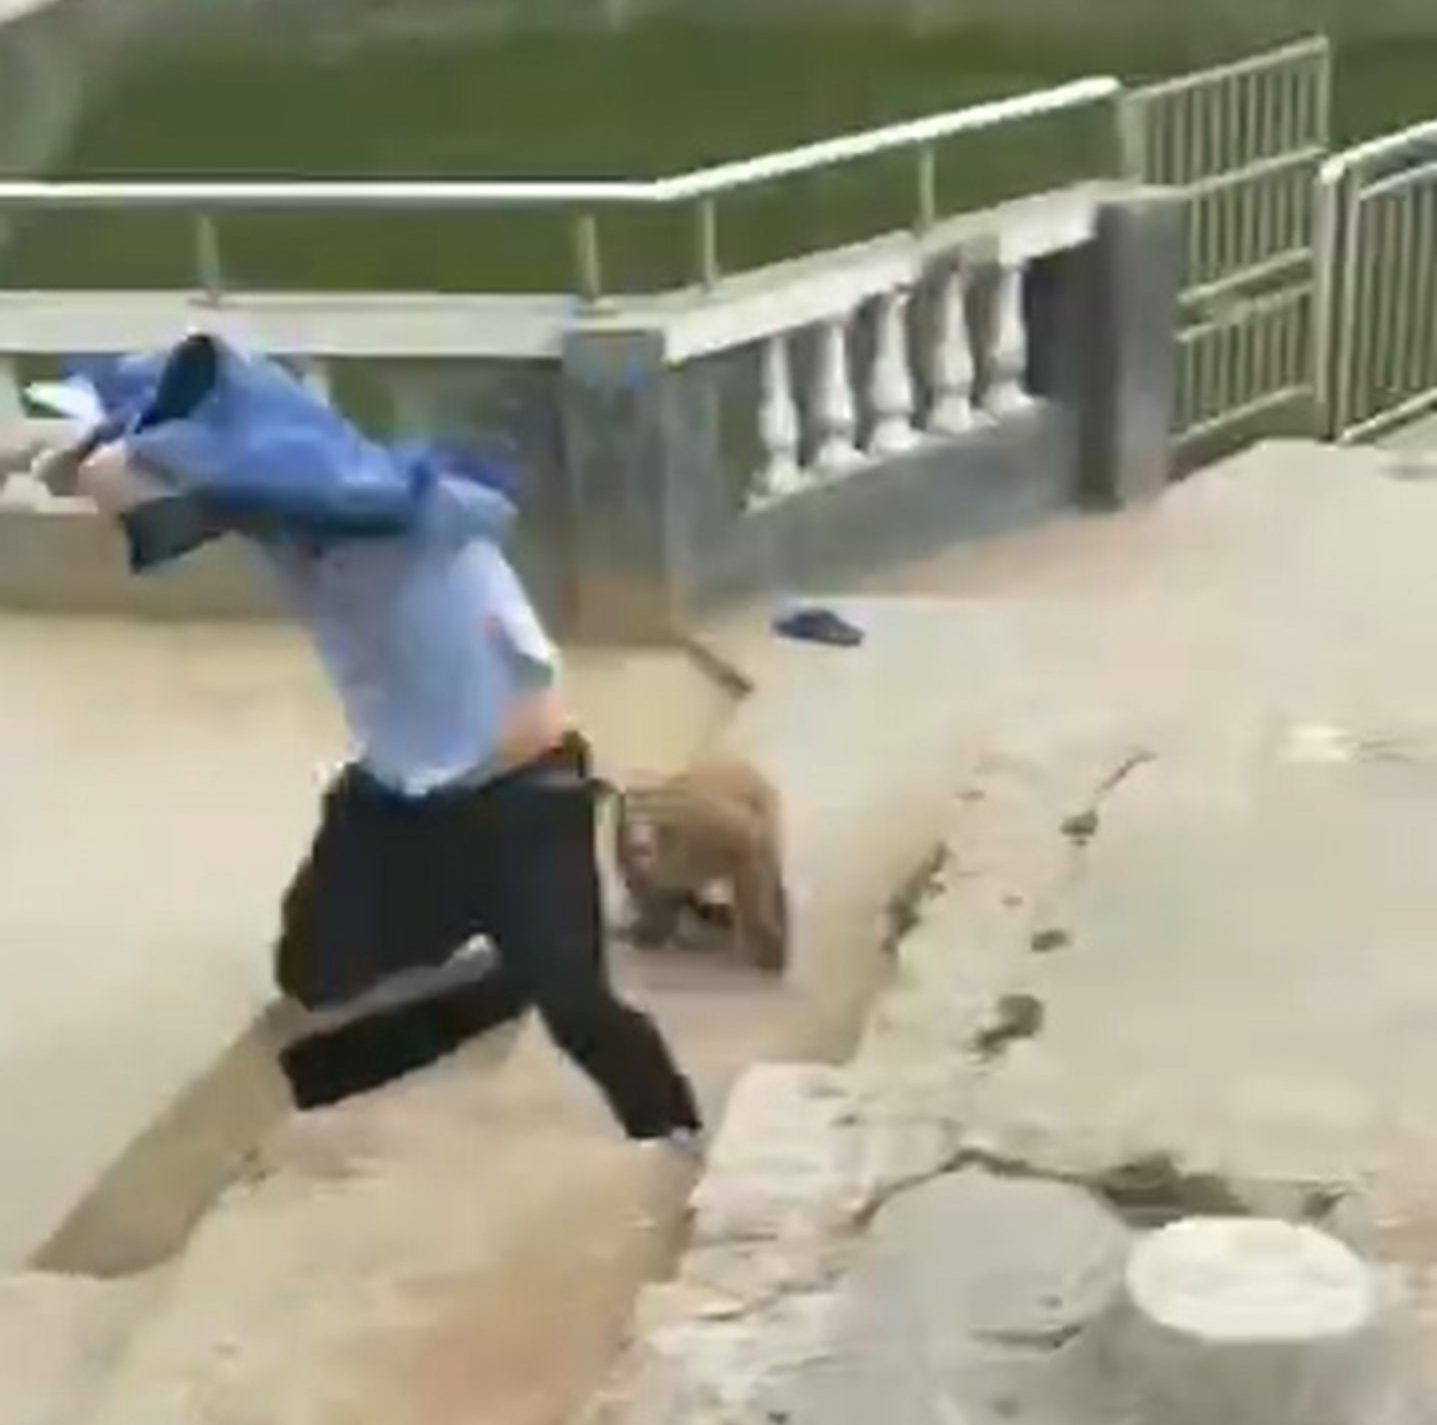 "Pic shows: The monkey starts to chase the tourist after the prank. This is the moment a prankster tourist is punished by instant karma when he tries to push a monkey into a pond but it turns around and attacks him, scratching his hand and face. The unnamed man was visiting the Xitian Temple in Dehua County in East China???s Fujian Province when he tried to push one of the resident monkeys into a pond for a laugh. Footage taken by another visitor shows the man creeping up on the unsuspecting animal, which is perched on a metal railing next to the body of water. The man suddenly shoves the monkey, which cries as it falls over the railing - but a second later the primate leaps back up again at shocking speed. The monkey then chases the man as other visitors laugh. The video shows him running into the temple where he believed the monkey would not give chase - but it does. The monkey???s clan mate rushes to its rescue and enters the building to attack the man. ""The monkeys scratched the tourist,"" a temple employee said, adding: ""There were other people inside, and they helped drive the monkeys away."" The tourist later shared a photo of his bloodied hand and face. (ends)"